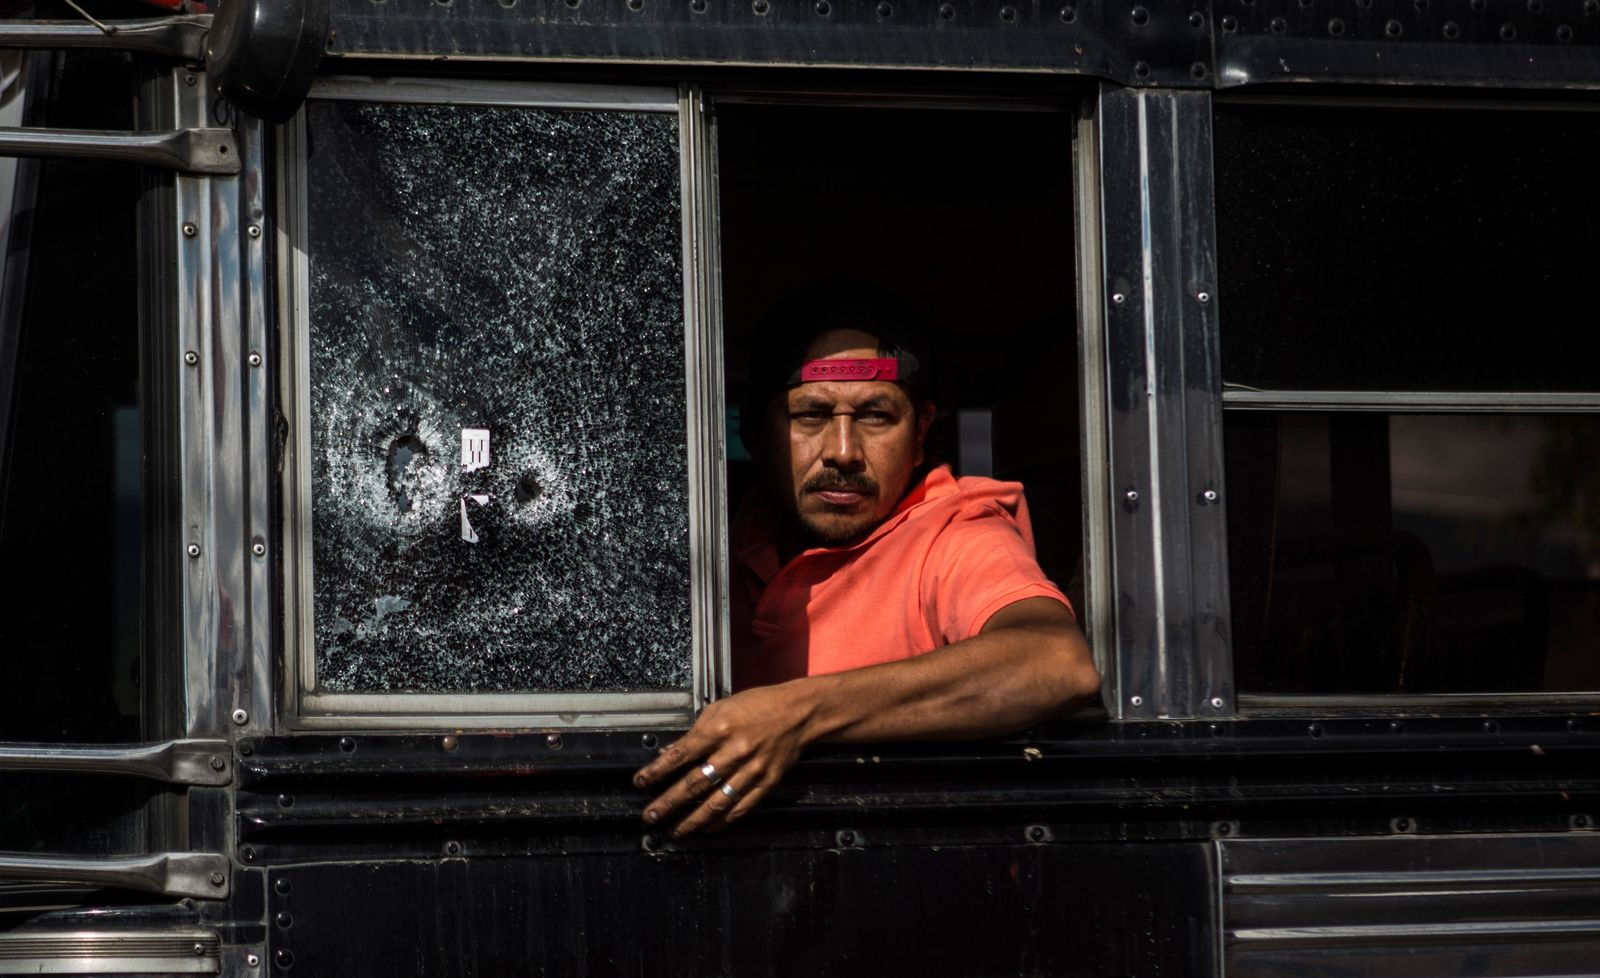 A bus driver peers from his window, which he said was shot a few weeks ago, as he drives slowly through a security checkpoint in the El Milagro area of the Mixco municipality on the outskirts of Guatemala City, Friday, Jan. 17, 2020. Guatemala's new president announced a state of alert for two municipalities with high crime rates to combat gang activity Friday, a measure that allows the deployment of military troops. (AP Photo/Oliver de Ros)